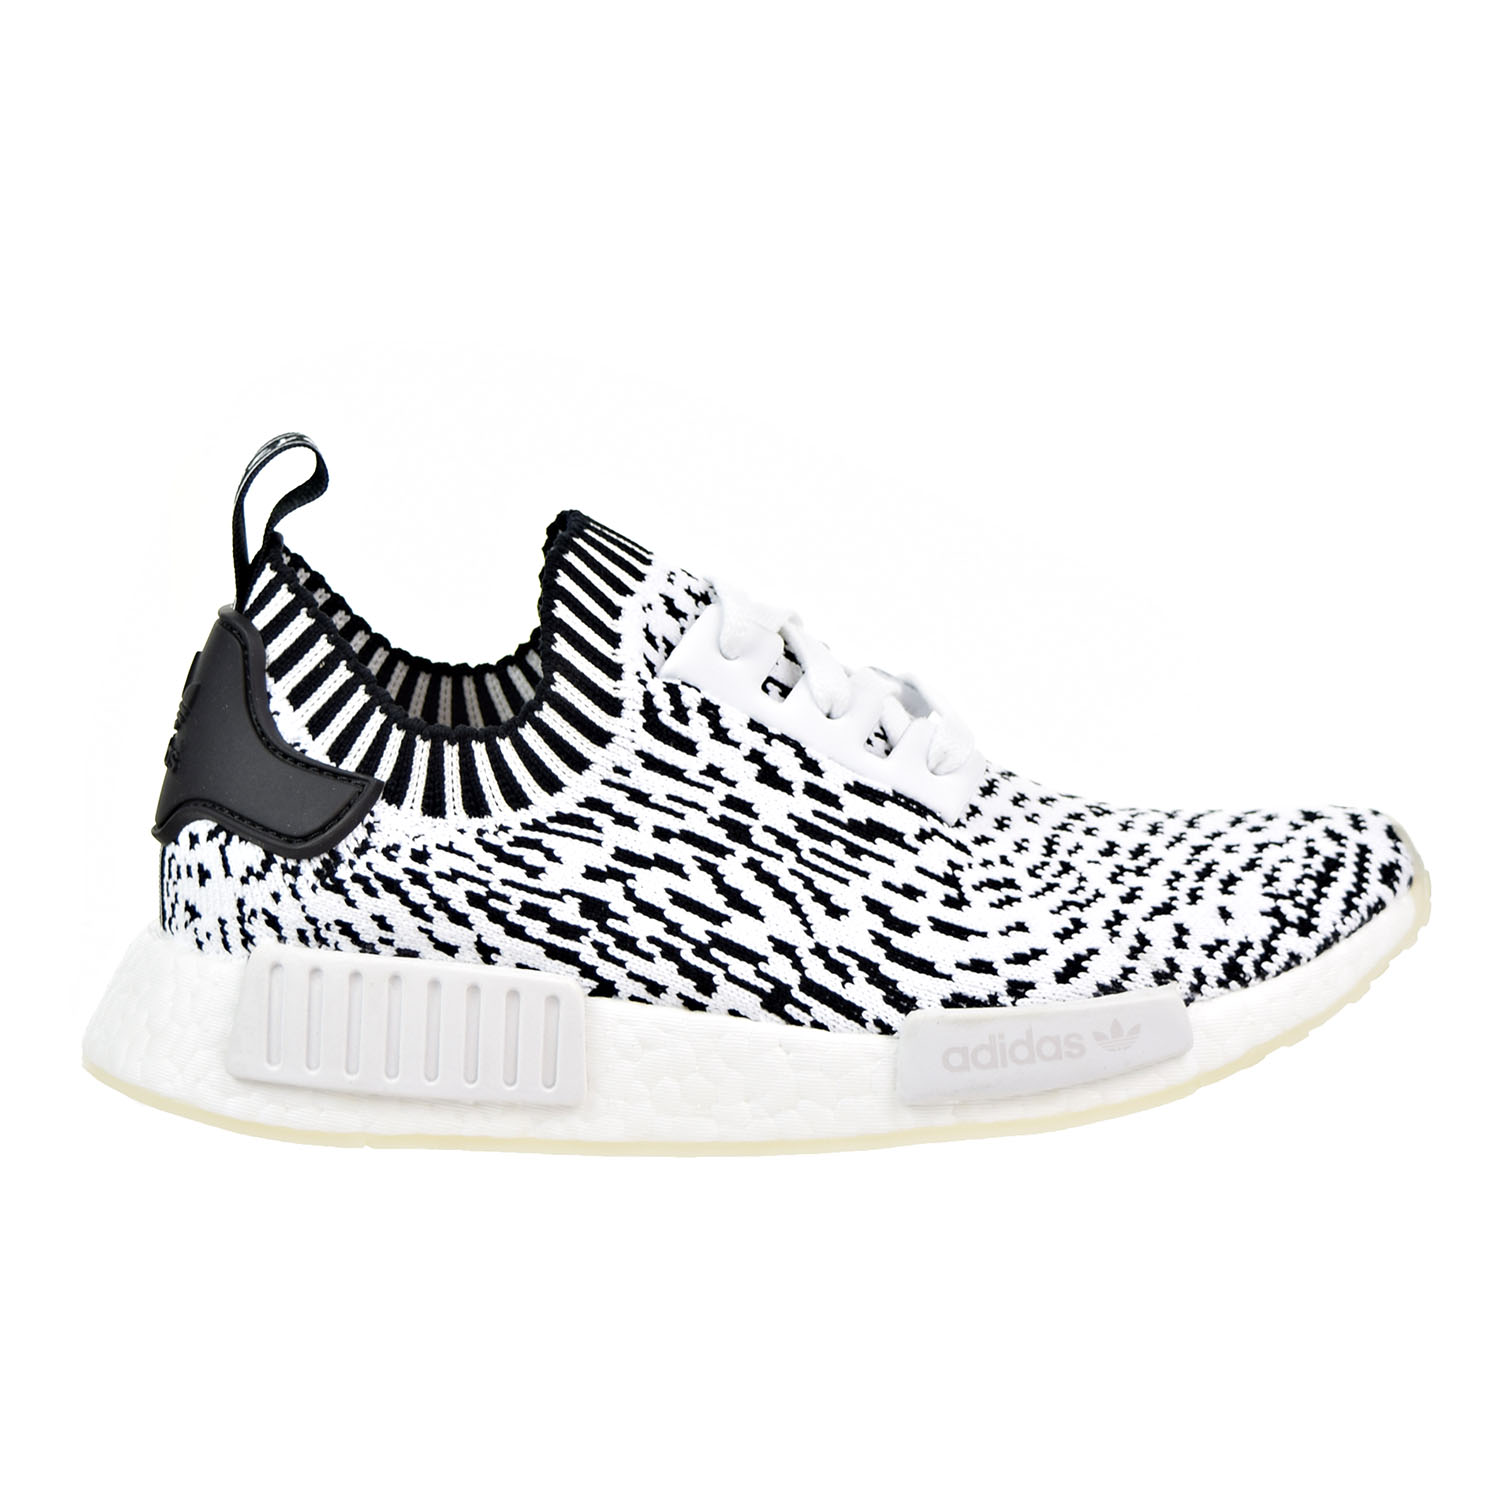 new style 8a668 cfeee Details about Adidas NMD_R1 Primeknit Men's Shoes White/Core Black bz0219